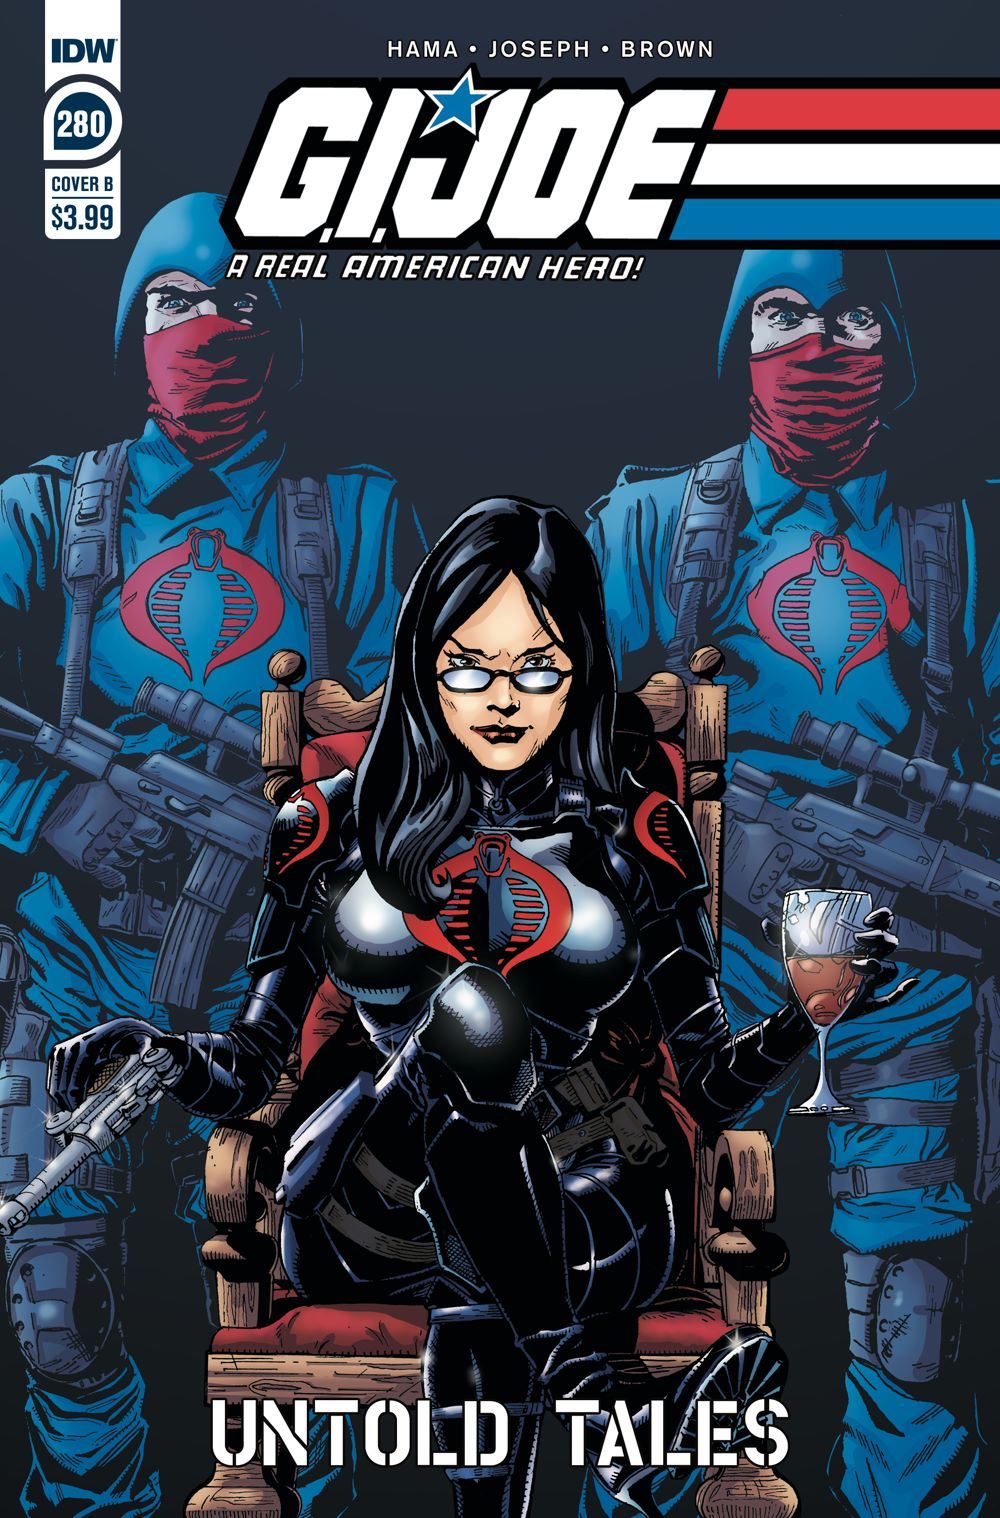 GIJoeRAH280-coverB ComicList: IDW Publishing New Releases for 04/28/2021